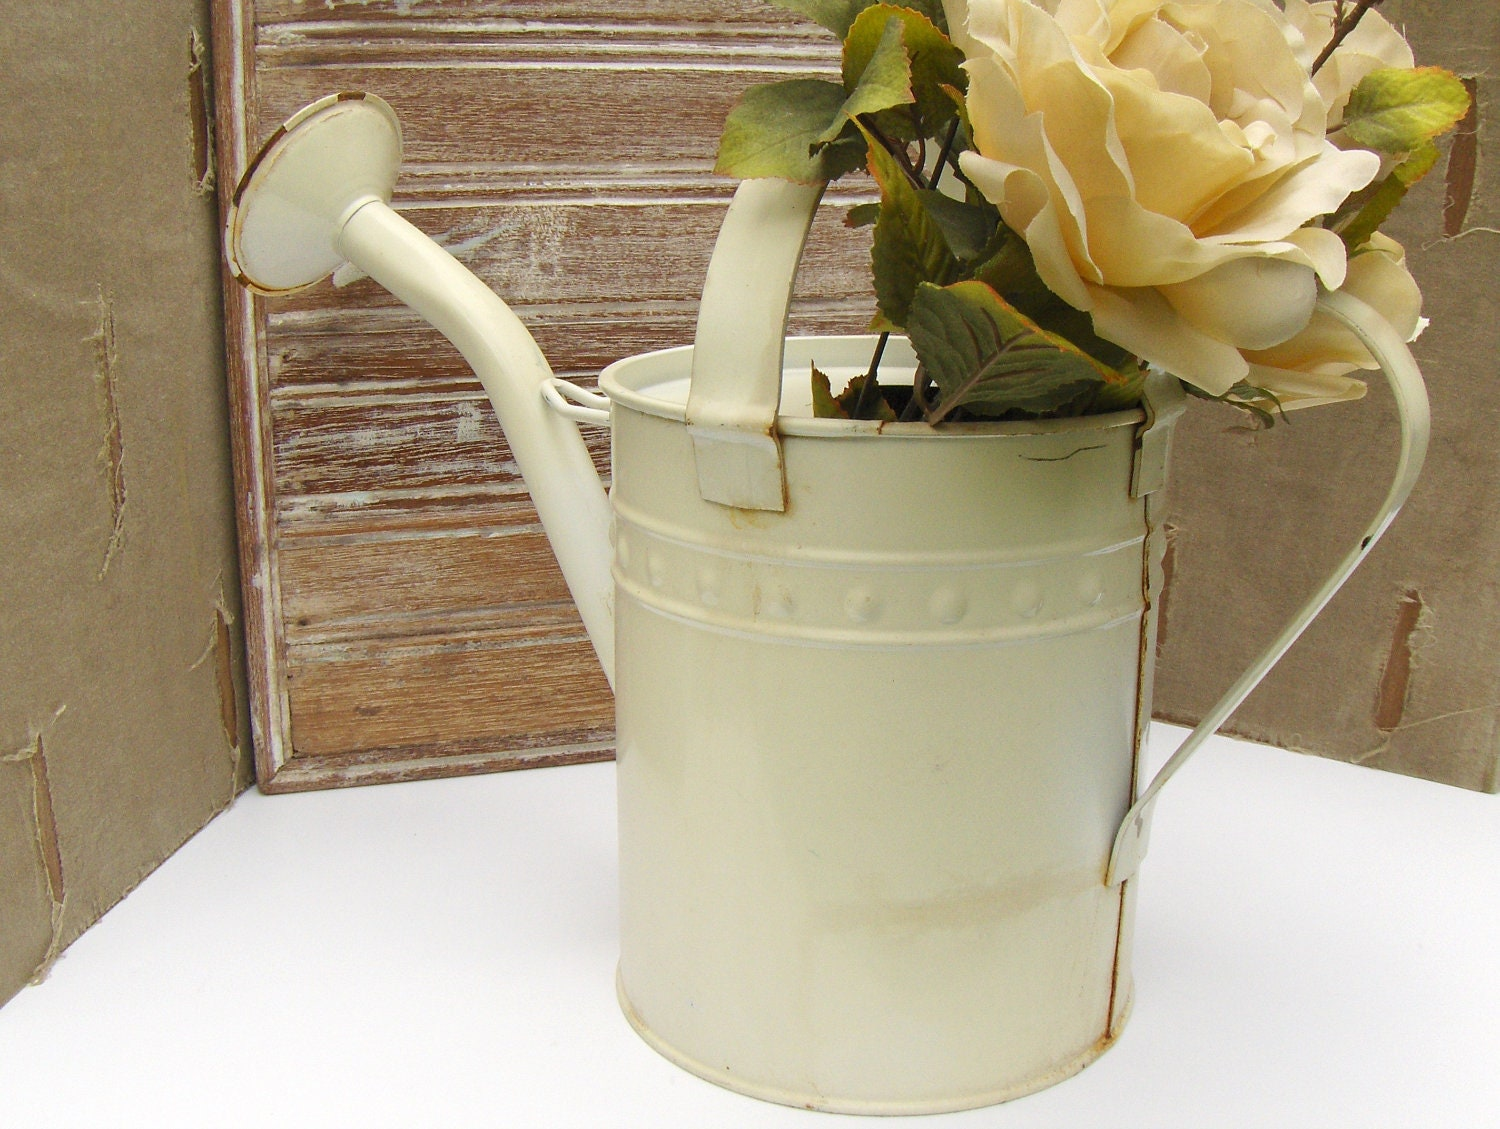 Vintage Metal Watering Can - MyVintageAlcove